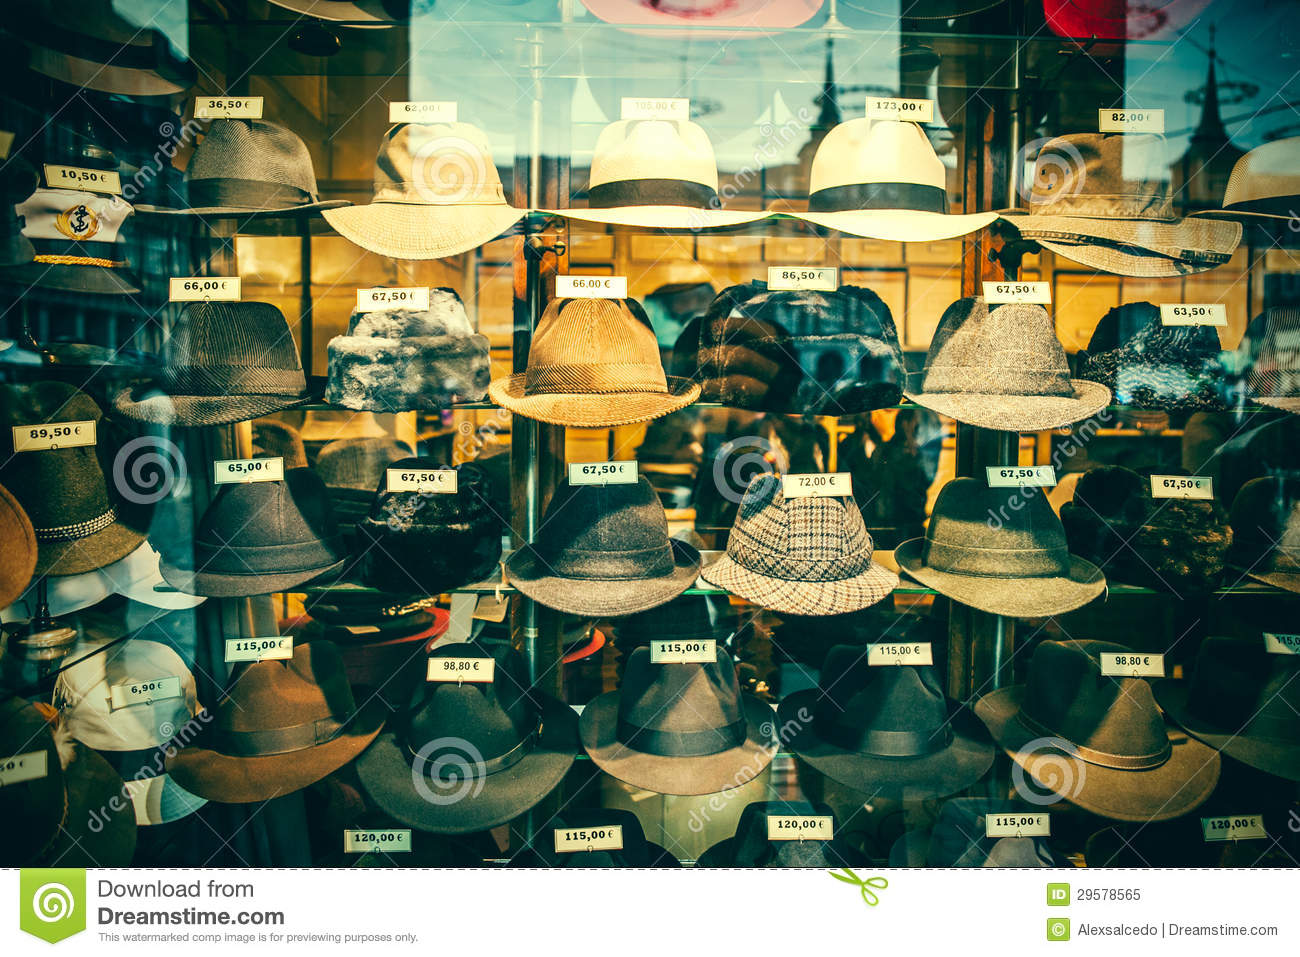 View of this old hats shop with vintage colors. 365ad96e0bd